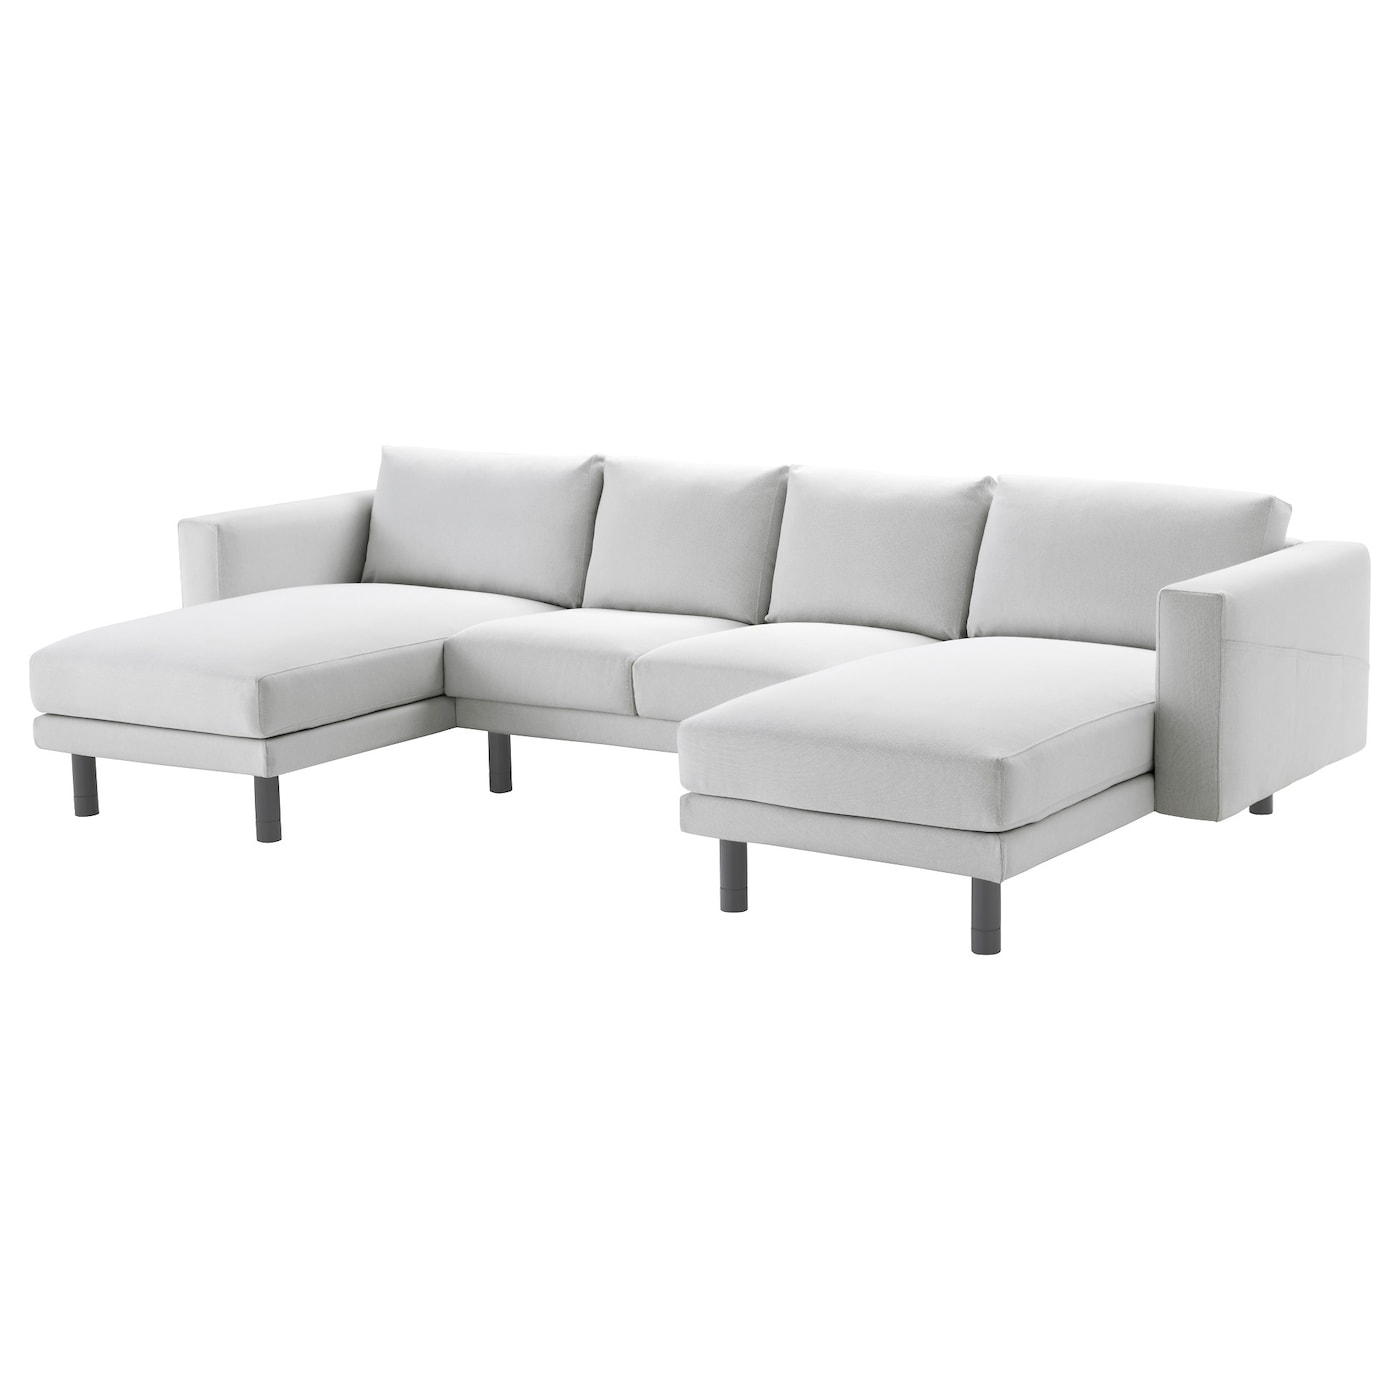 Norsborg 2 seat sofa with 2 chaise longues finnsta white for 2 5 seater sofa with chaise